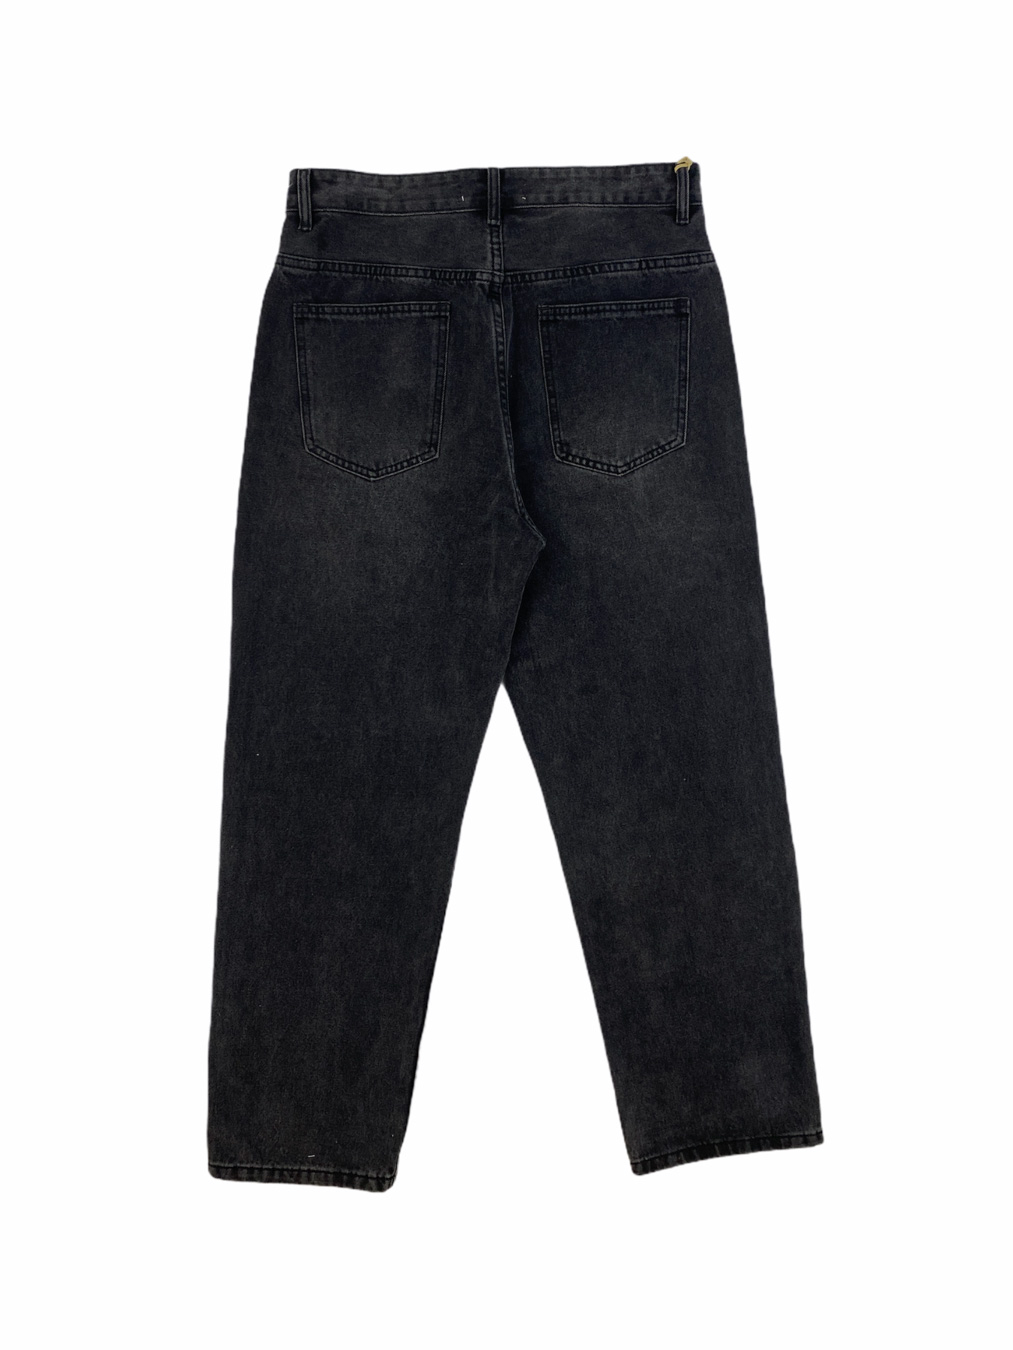 TRF Jeans (Gray)